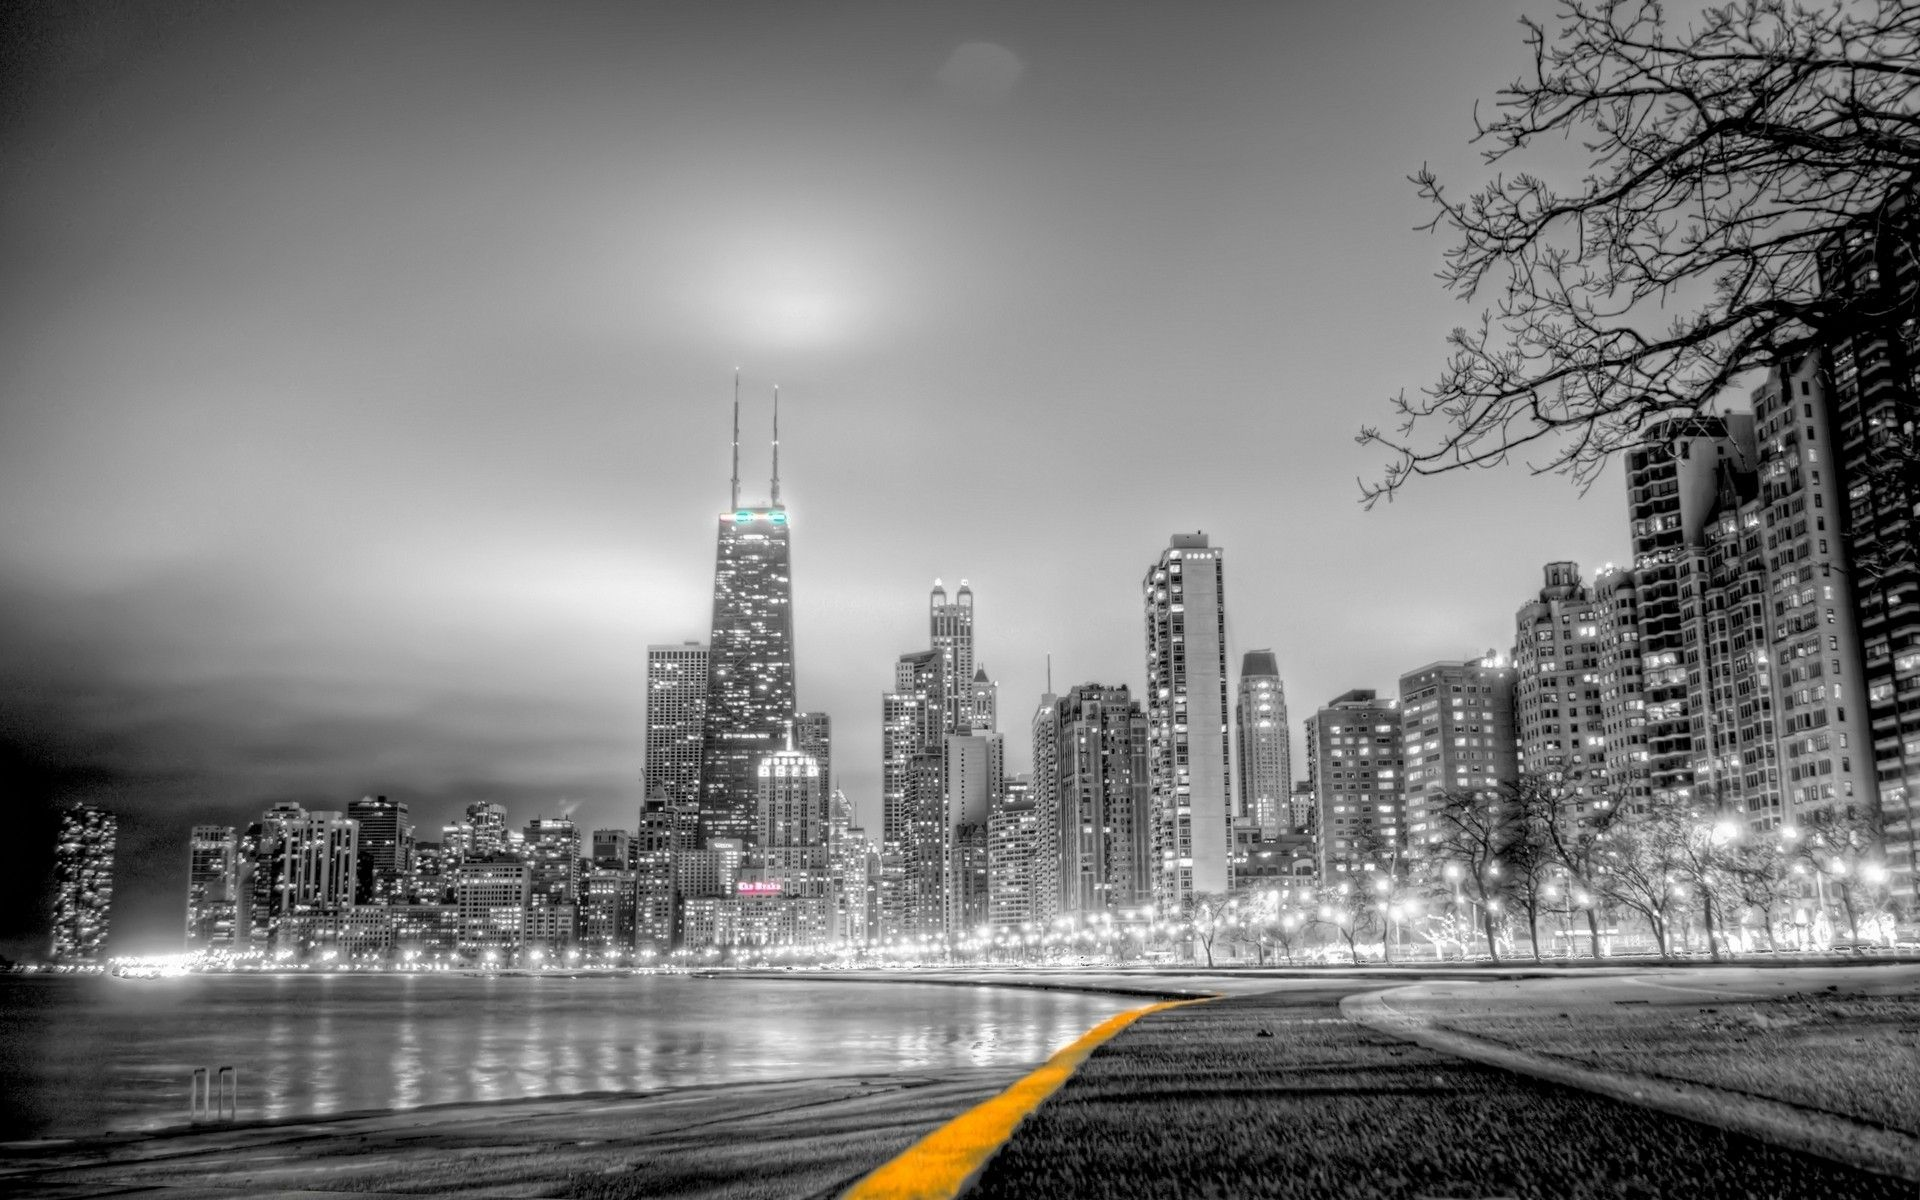 chicago black and white pictures for desktop wallpaper 1920 x 1200 px 692 31 kb bulls at